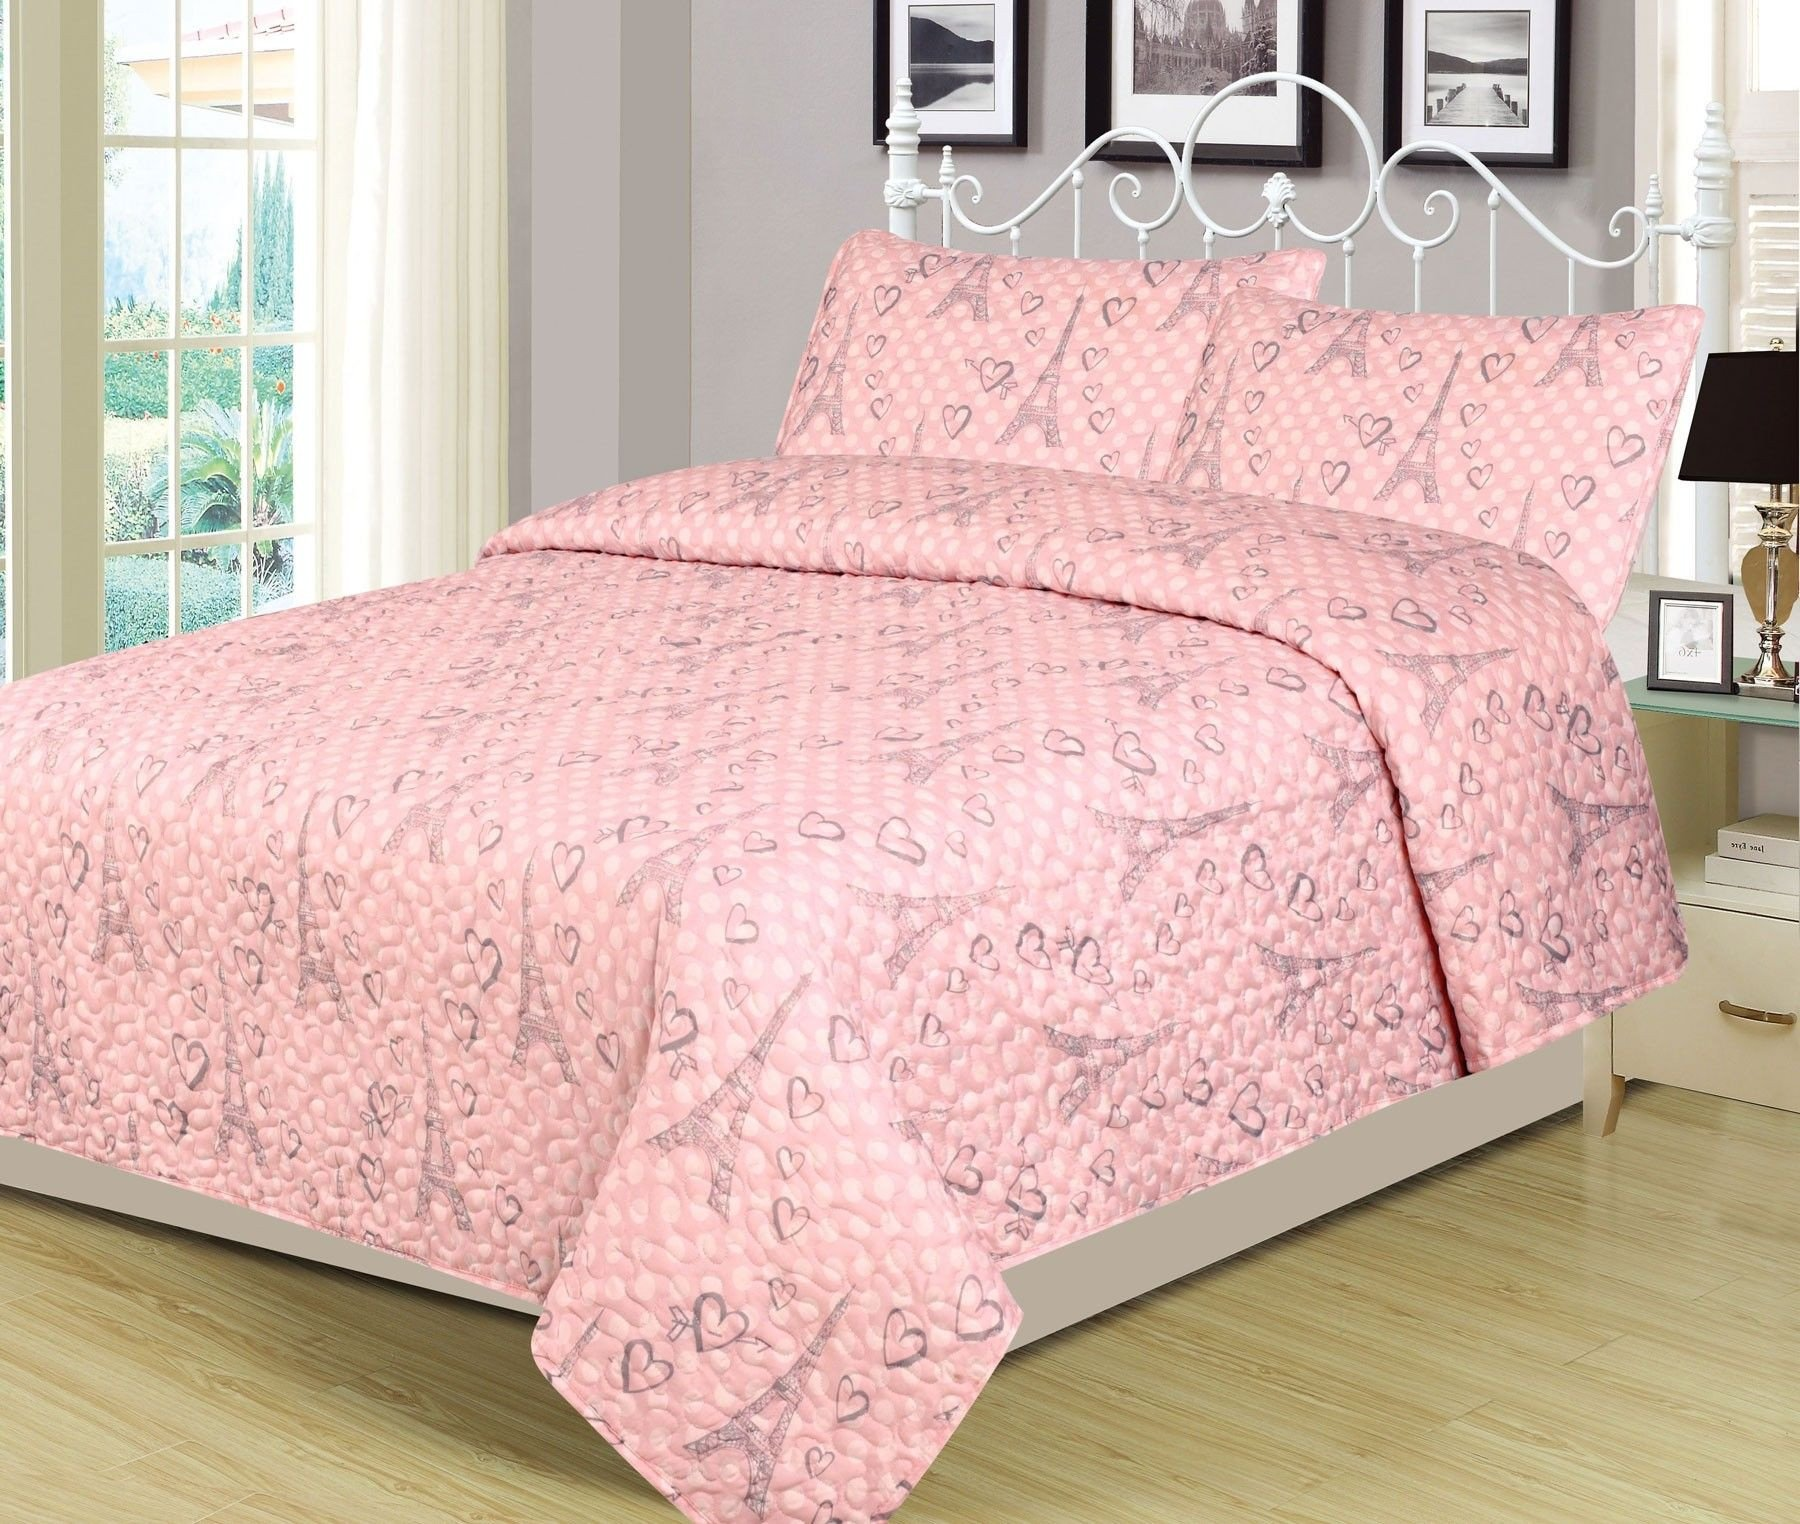 Girls Full Size Bedroom Set Elegant Beatrice Home Fashions Paris Polka Twin 2 Piece Bed Set